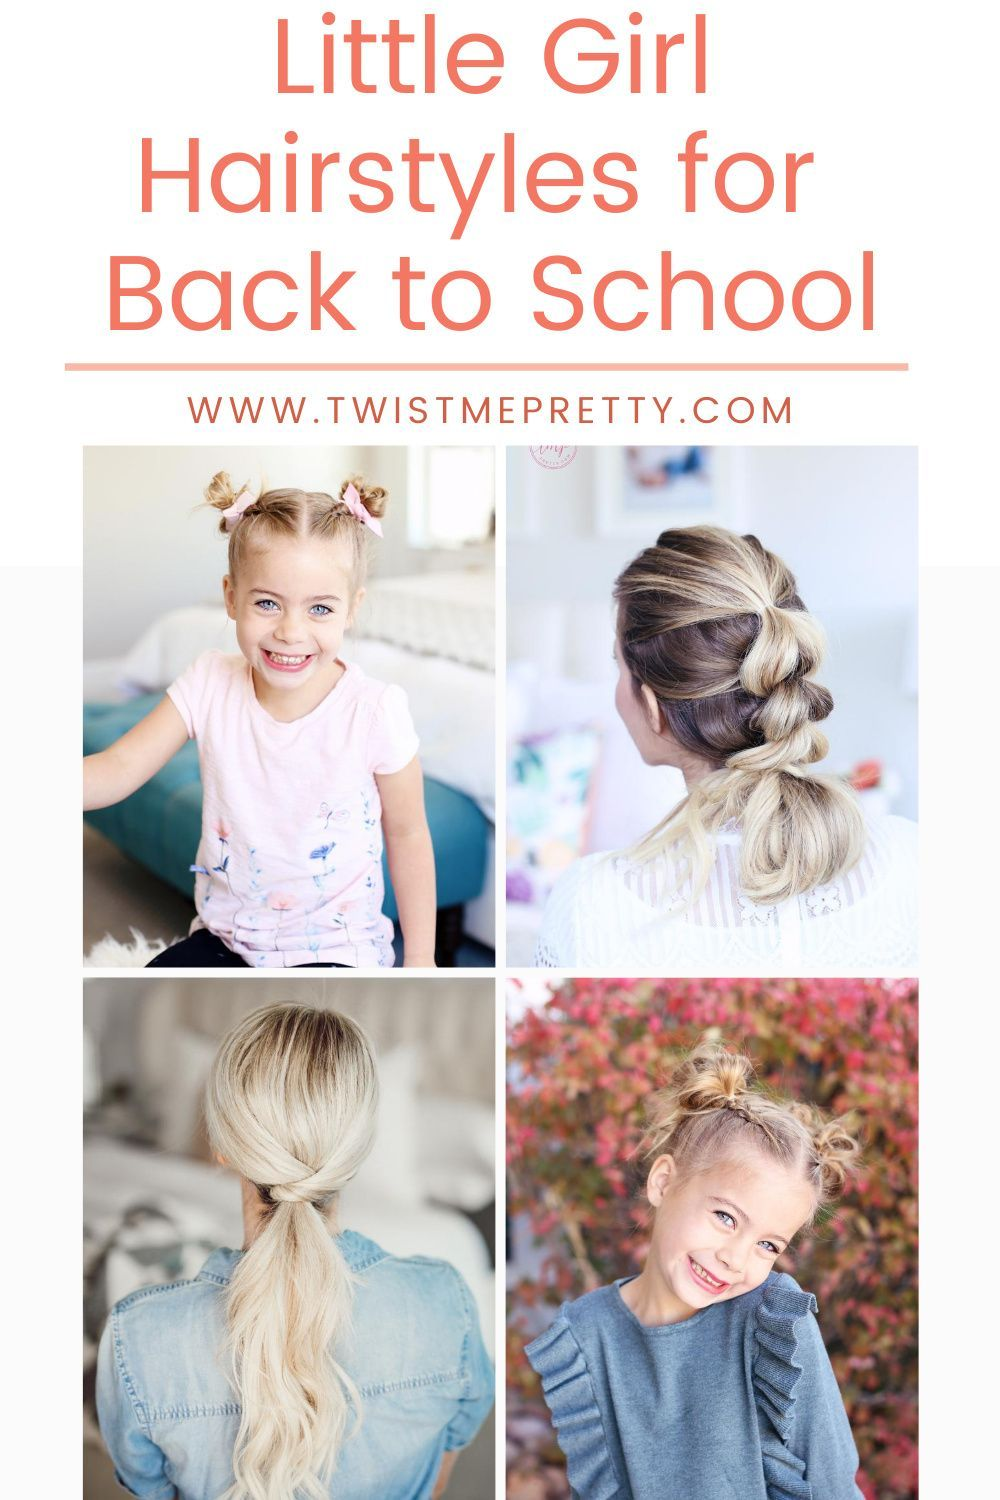 Little Girl Hairstyles for Back to School - Twist Me Pretty in 2020 | Girl  hairstyles, Little girl hairstyles, Hair styles